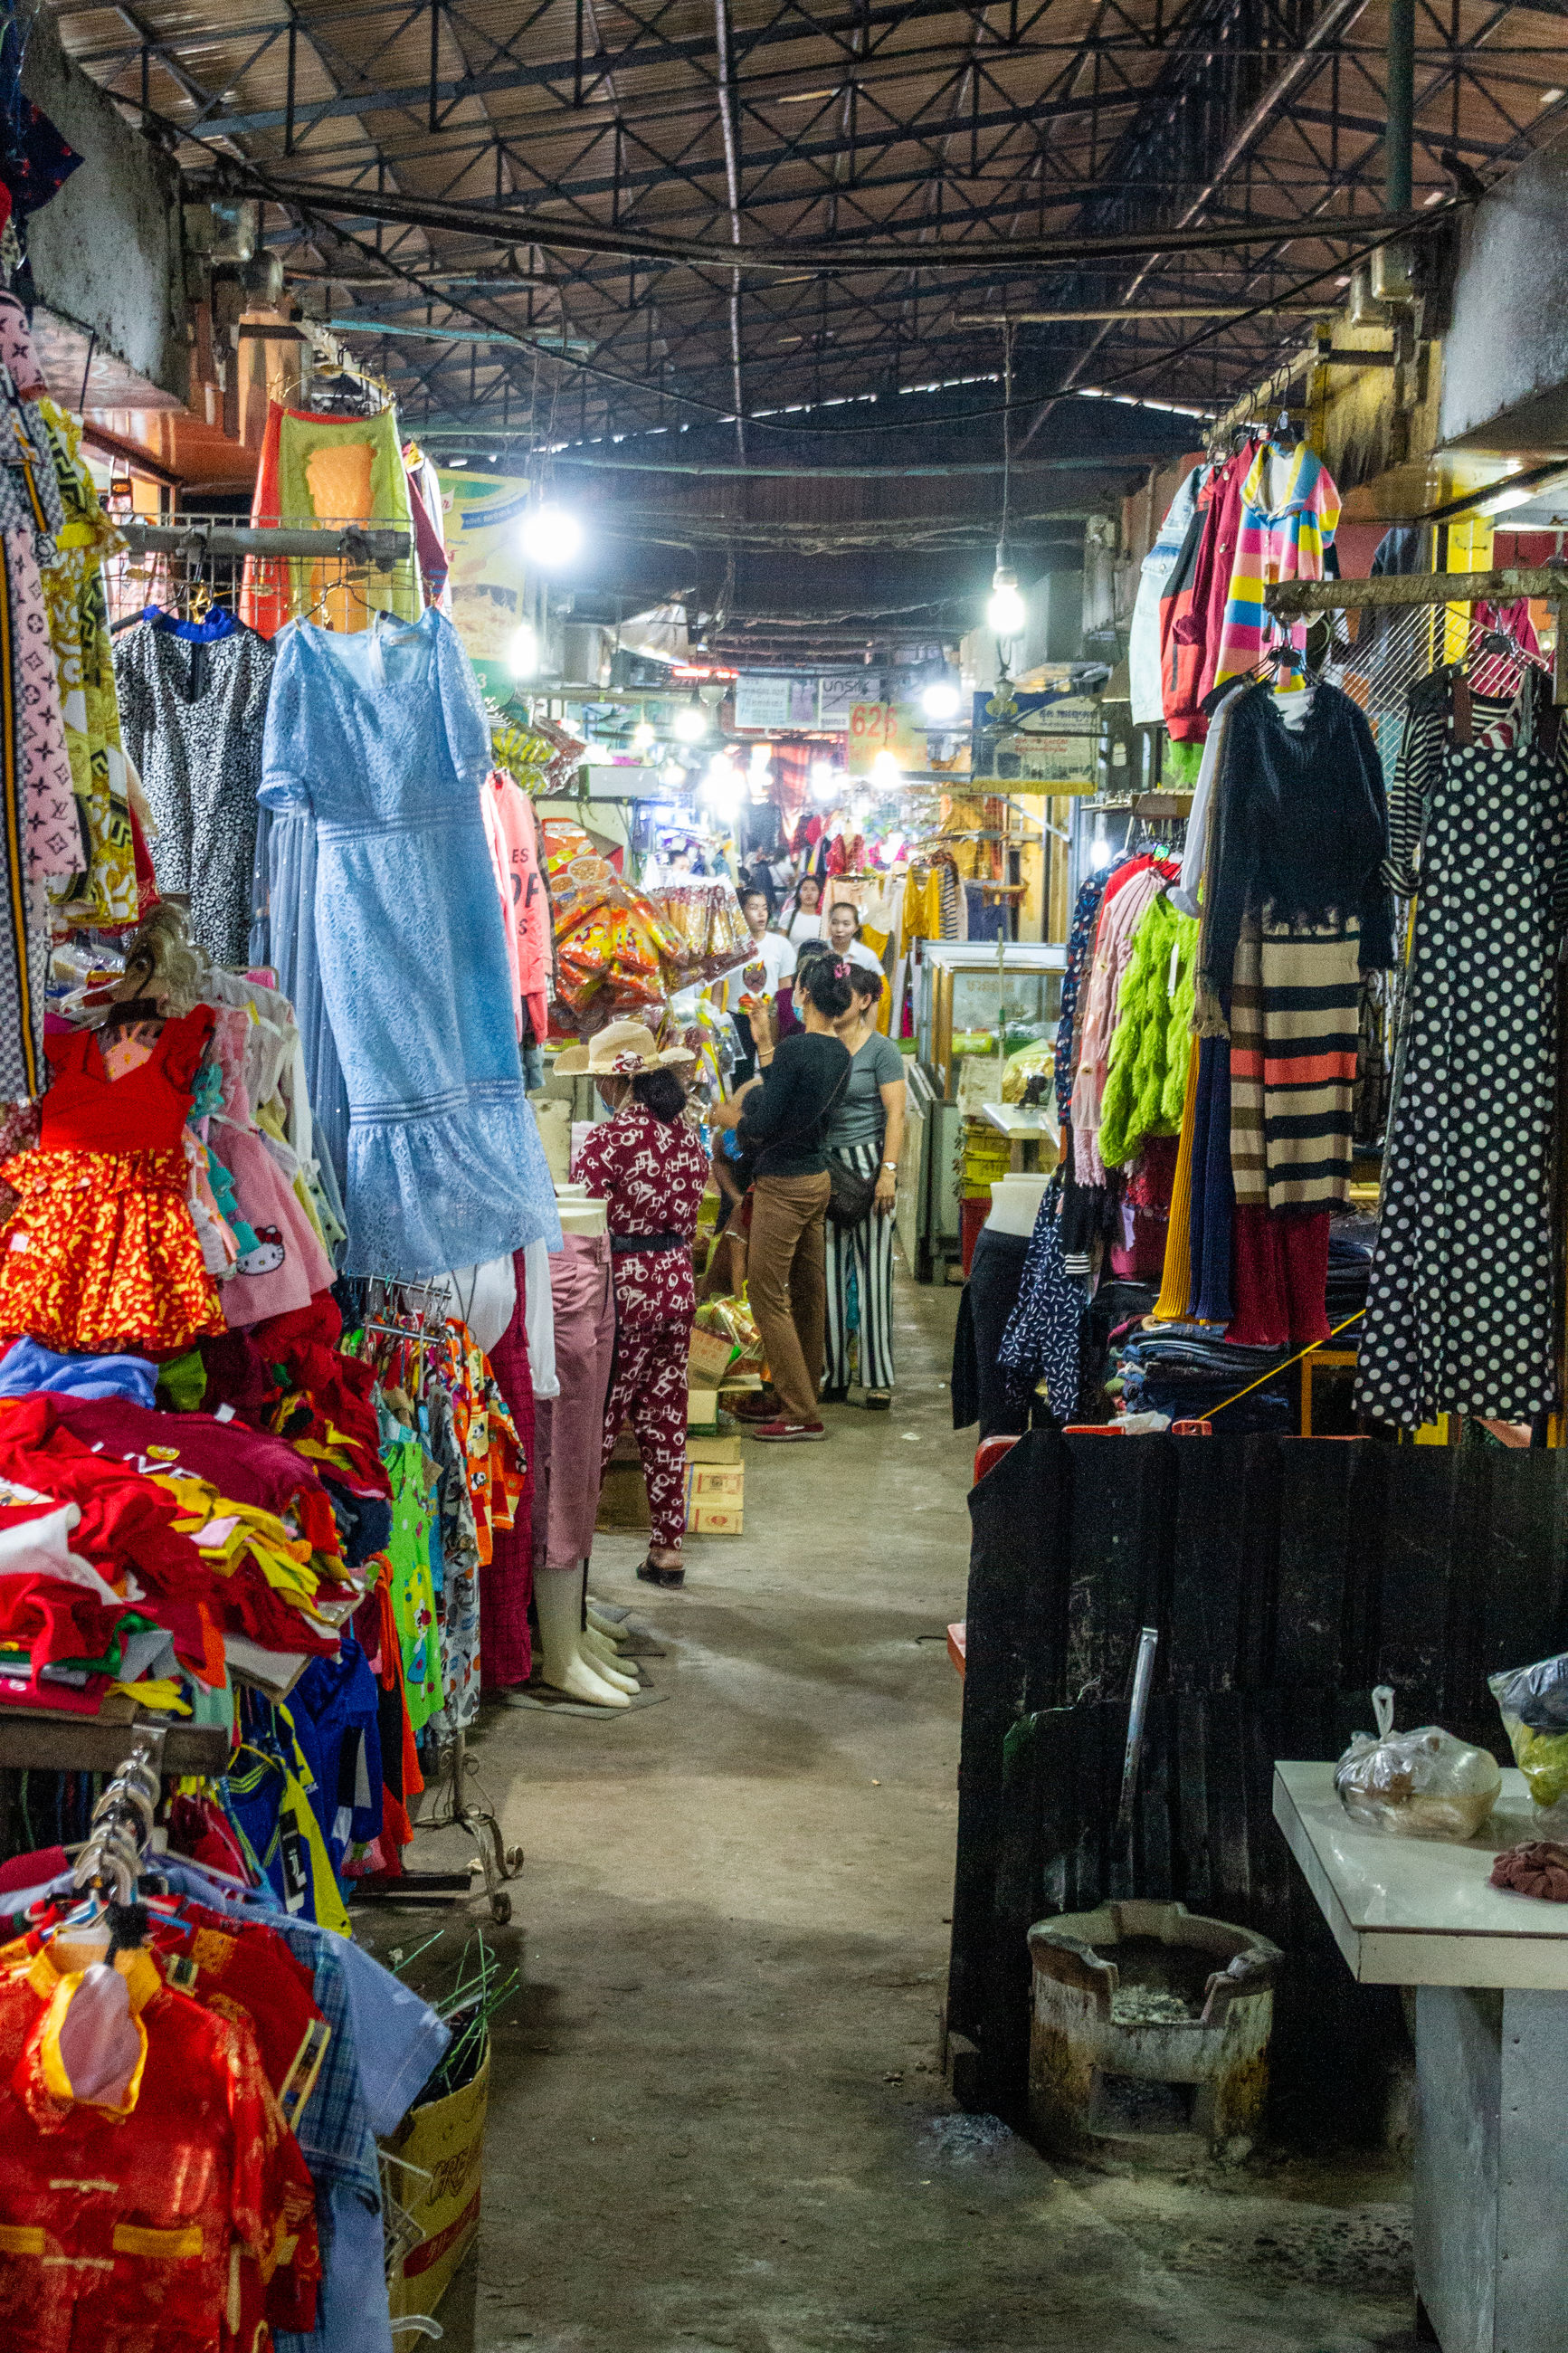 market, retail, choice, market stall, for sale, variation, small business, business, real people, abundance, shopping, large group of objects, hanging, incidental people, women, street market, buying, store, illuminated, multi colored, sale, consumerism, retail display